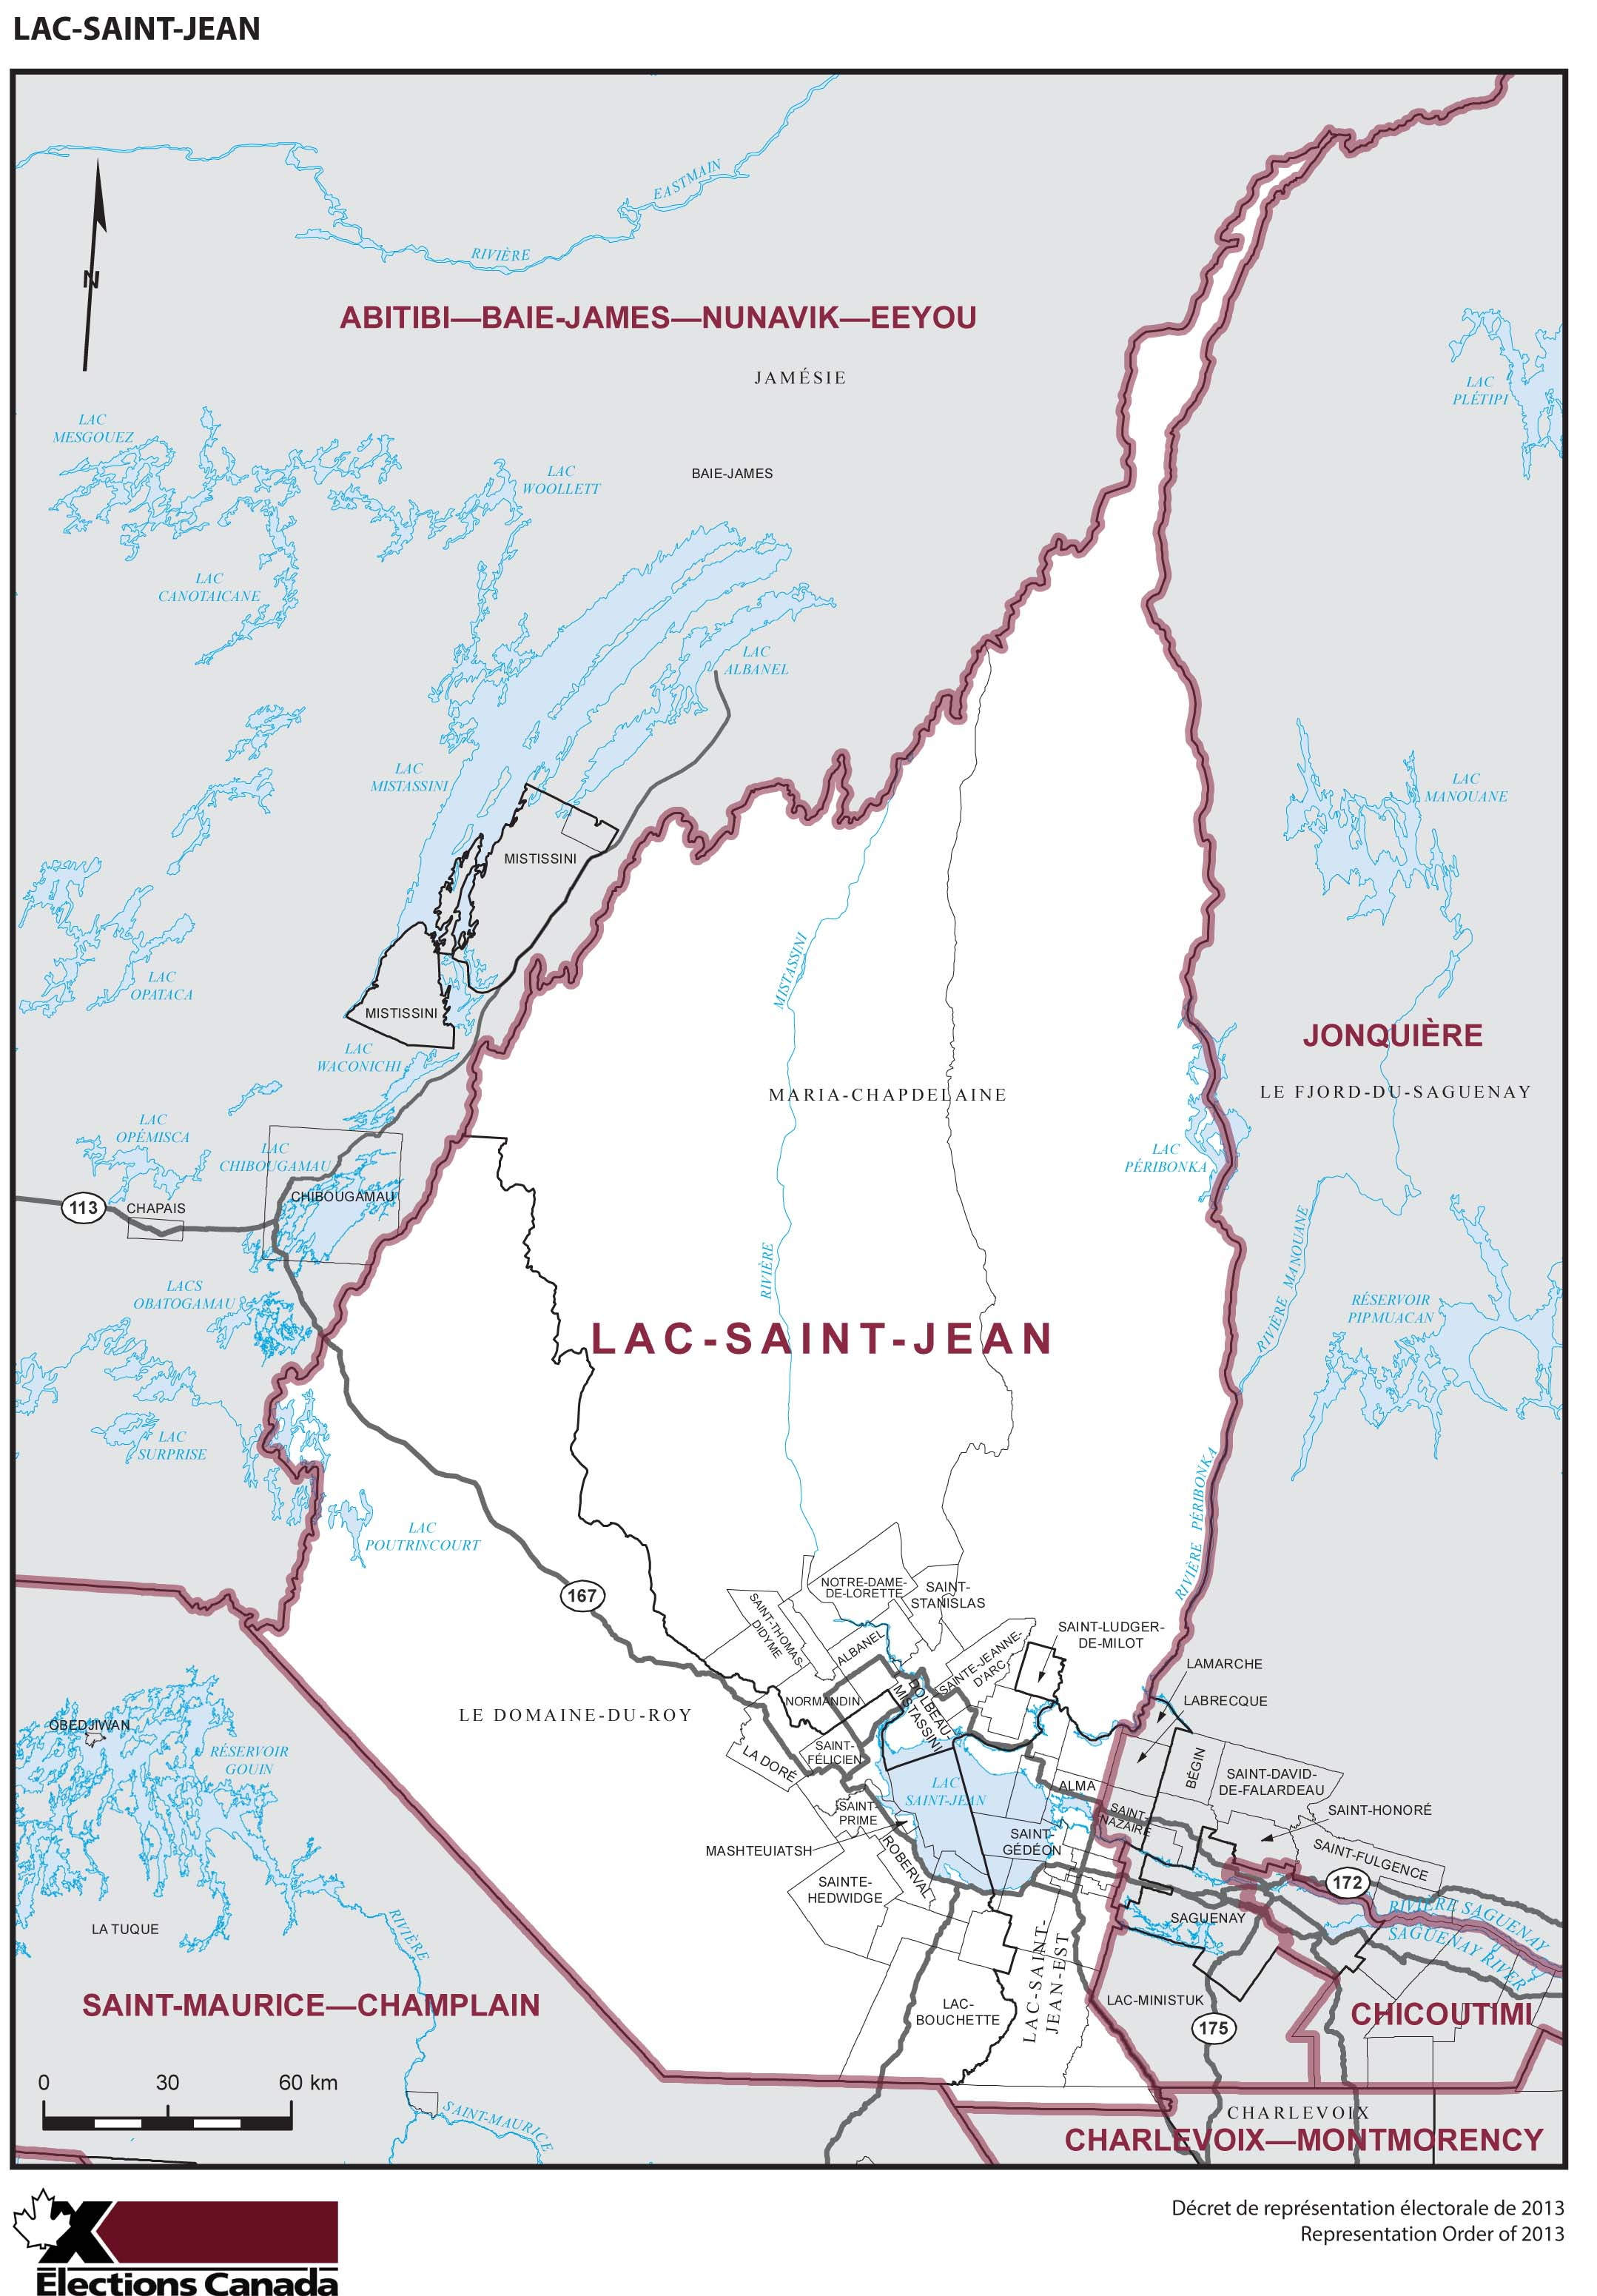 Map: Lac-Saint-Jean, Federal electoral district, 2013 Representation Order (in white), Quebec